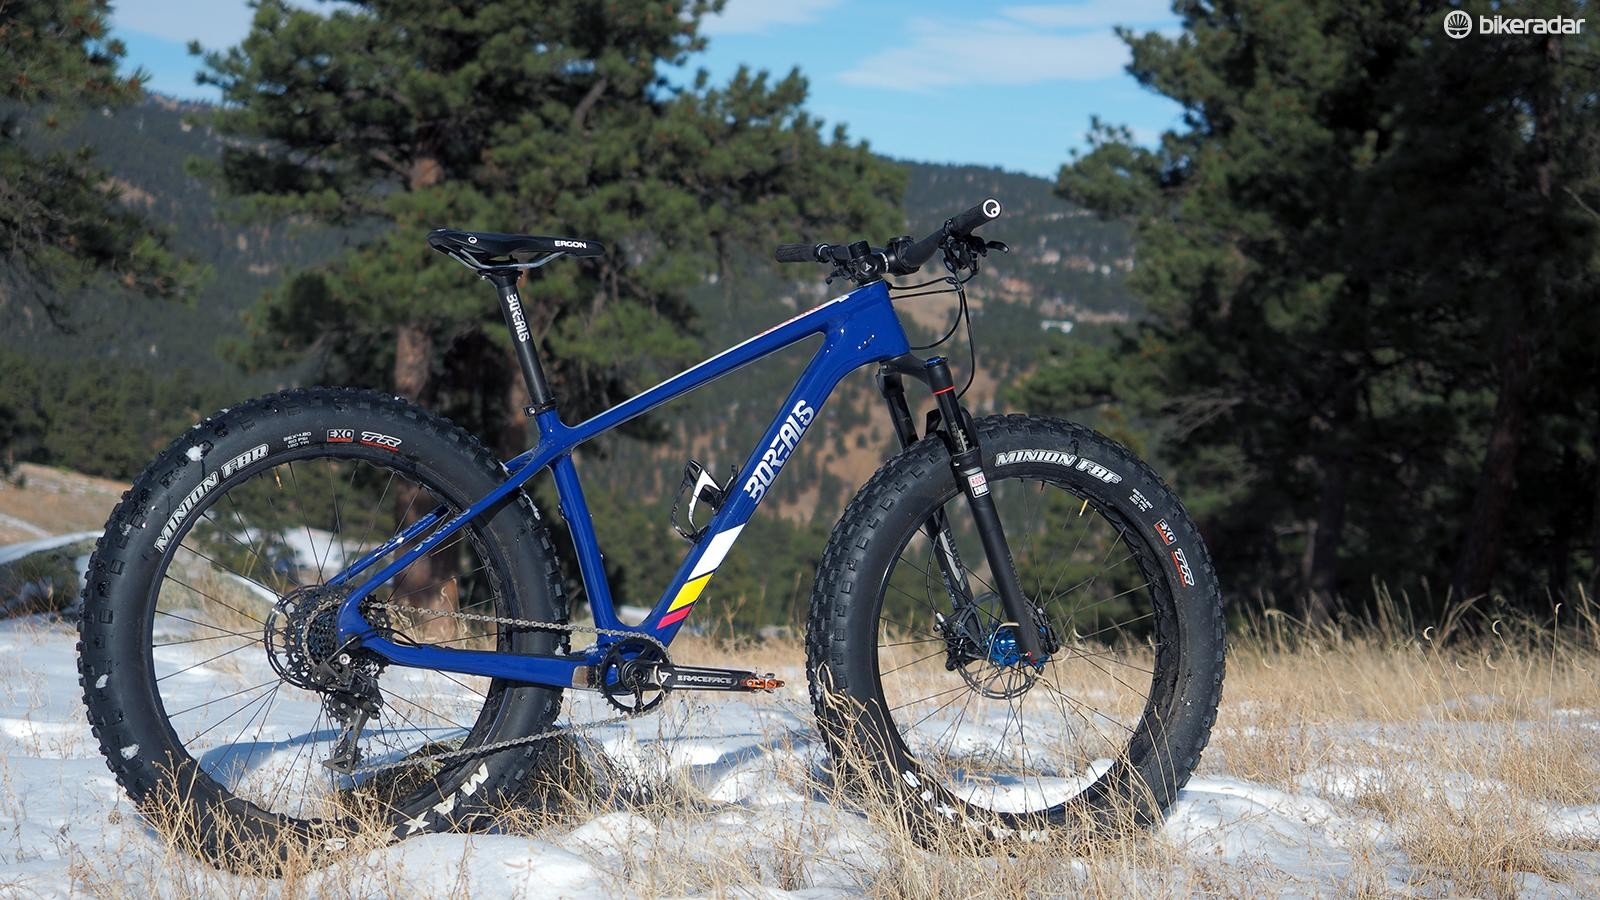 Borealis's new Crestone fat bike carries over its geometry almost identically from the previous Echo but with a 150g-lower claimed frame weight. The gorgeous paint makes it quite the looker, too